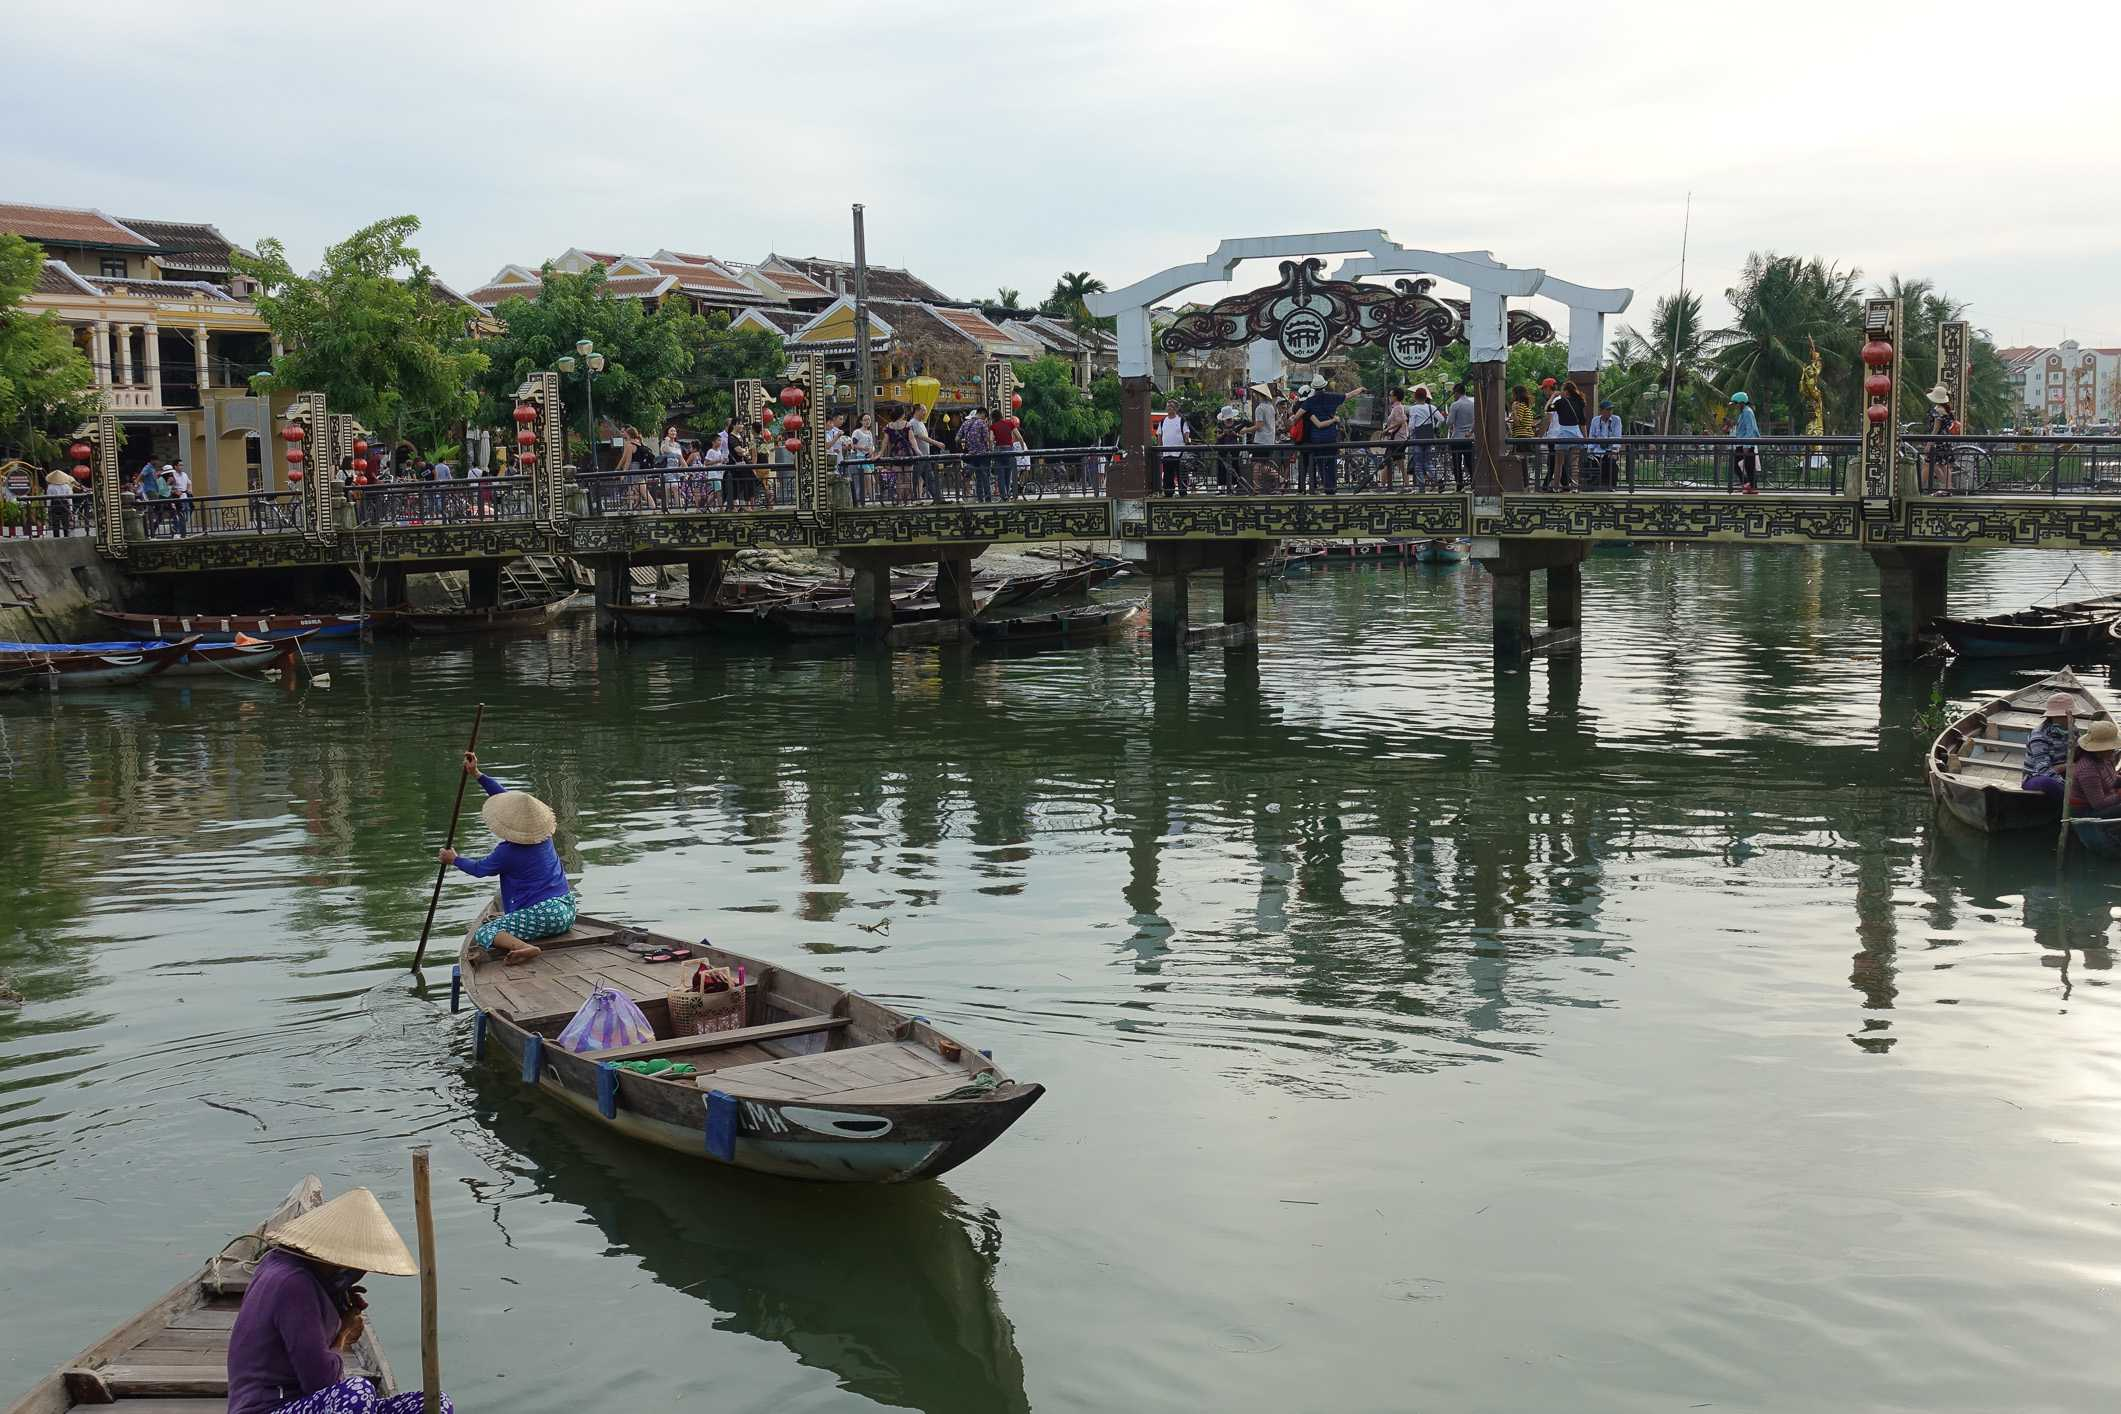 Hoi An city center